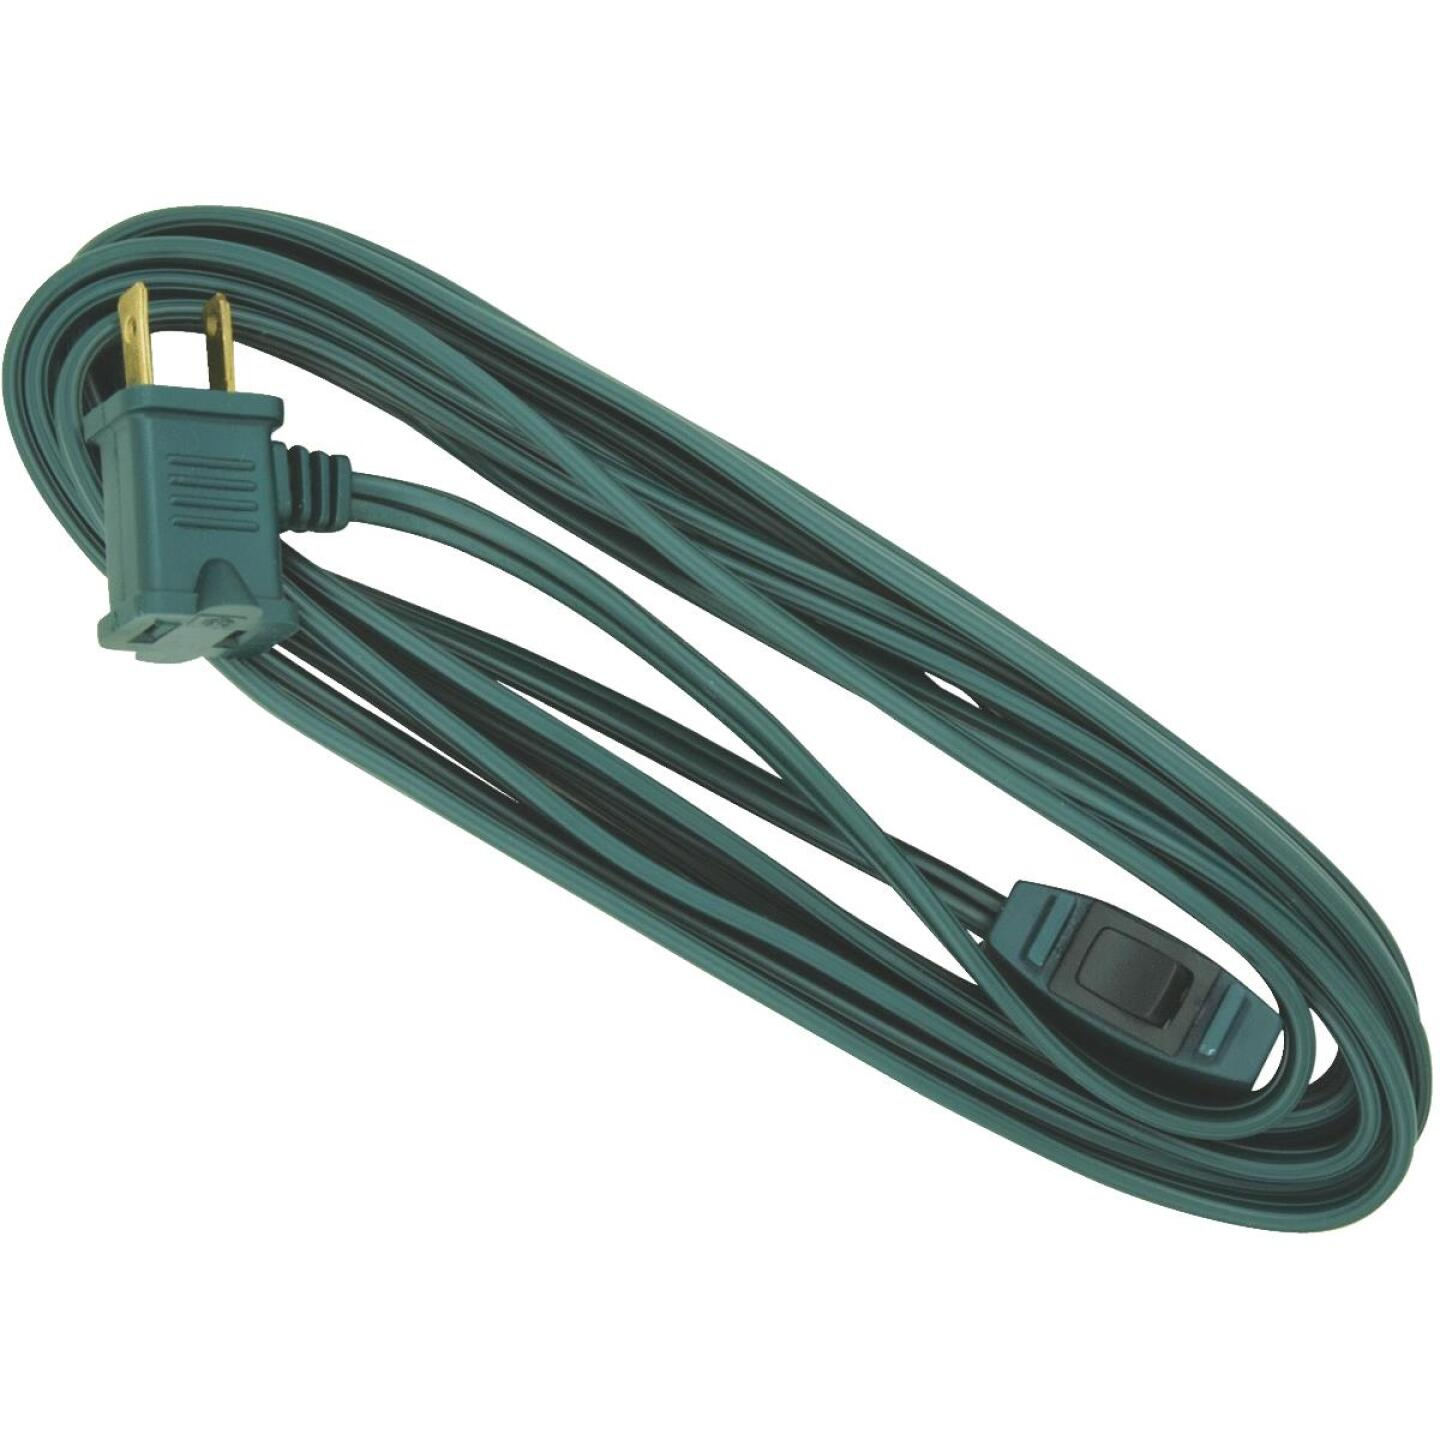 Do it 15 Ft. 16/2 Green Extension Cord with Switch Image 1